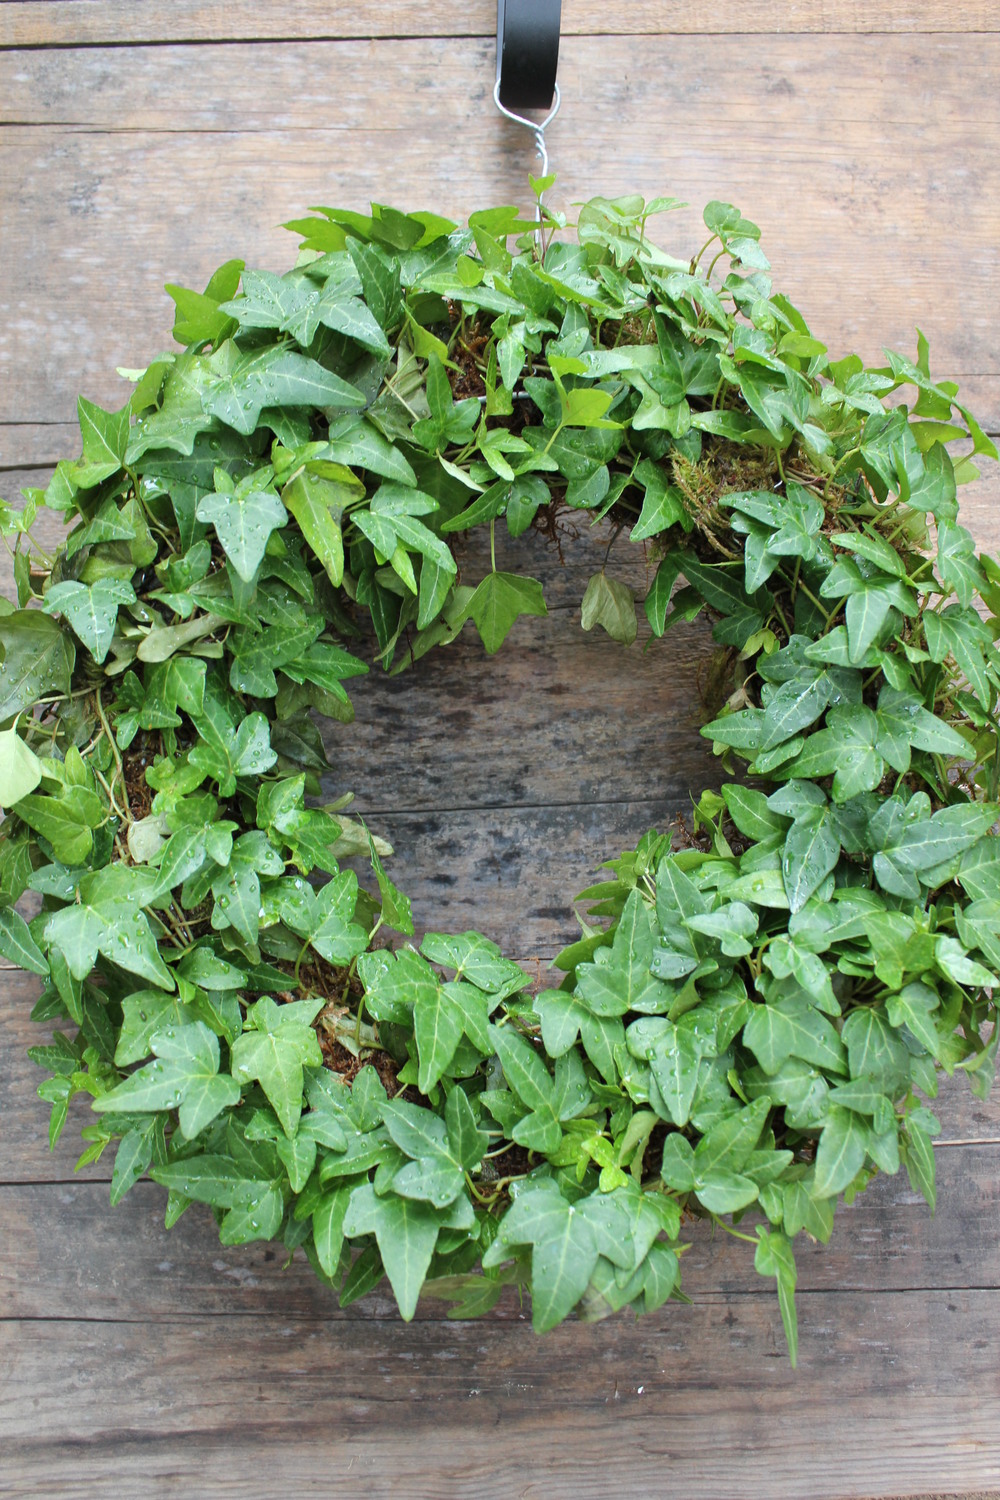 Living wreaths are also fantastic gifts, that last well beyond the holiday season.